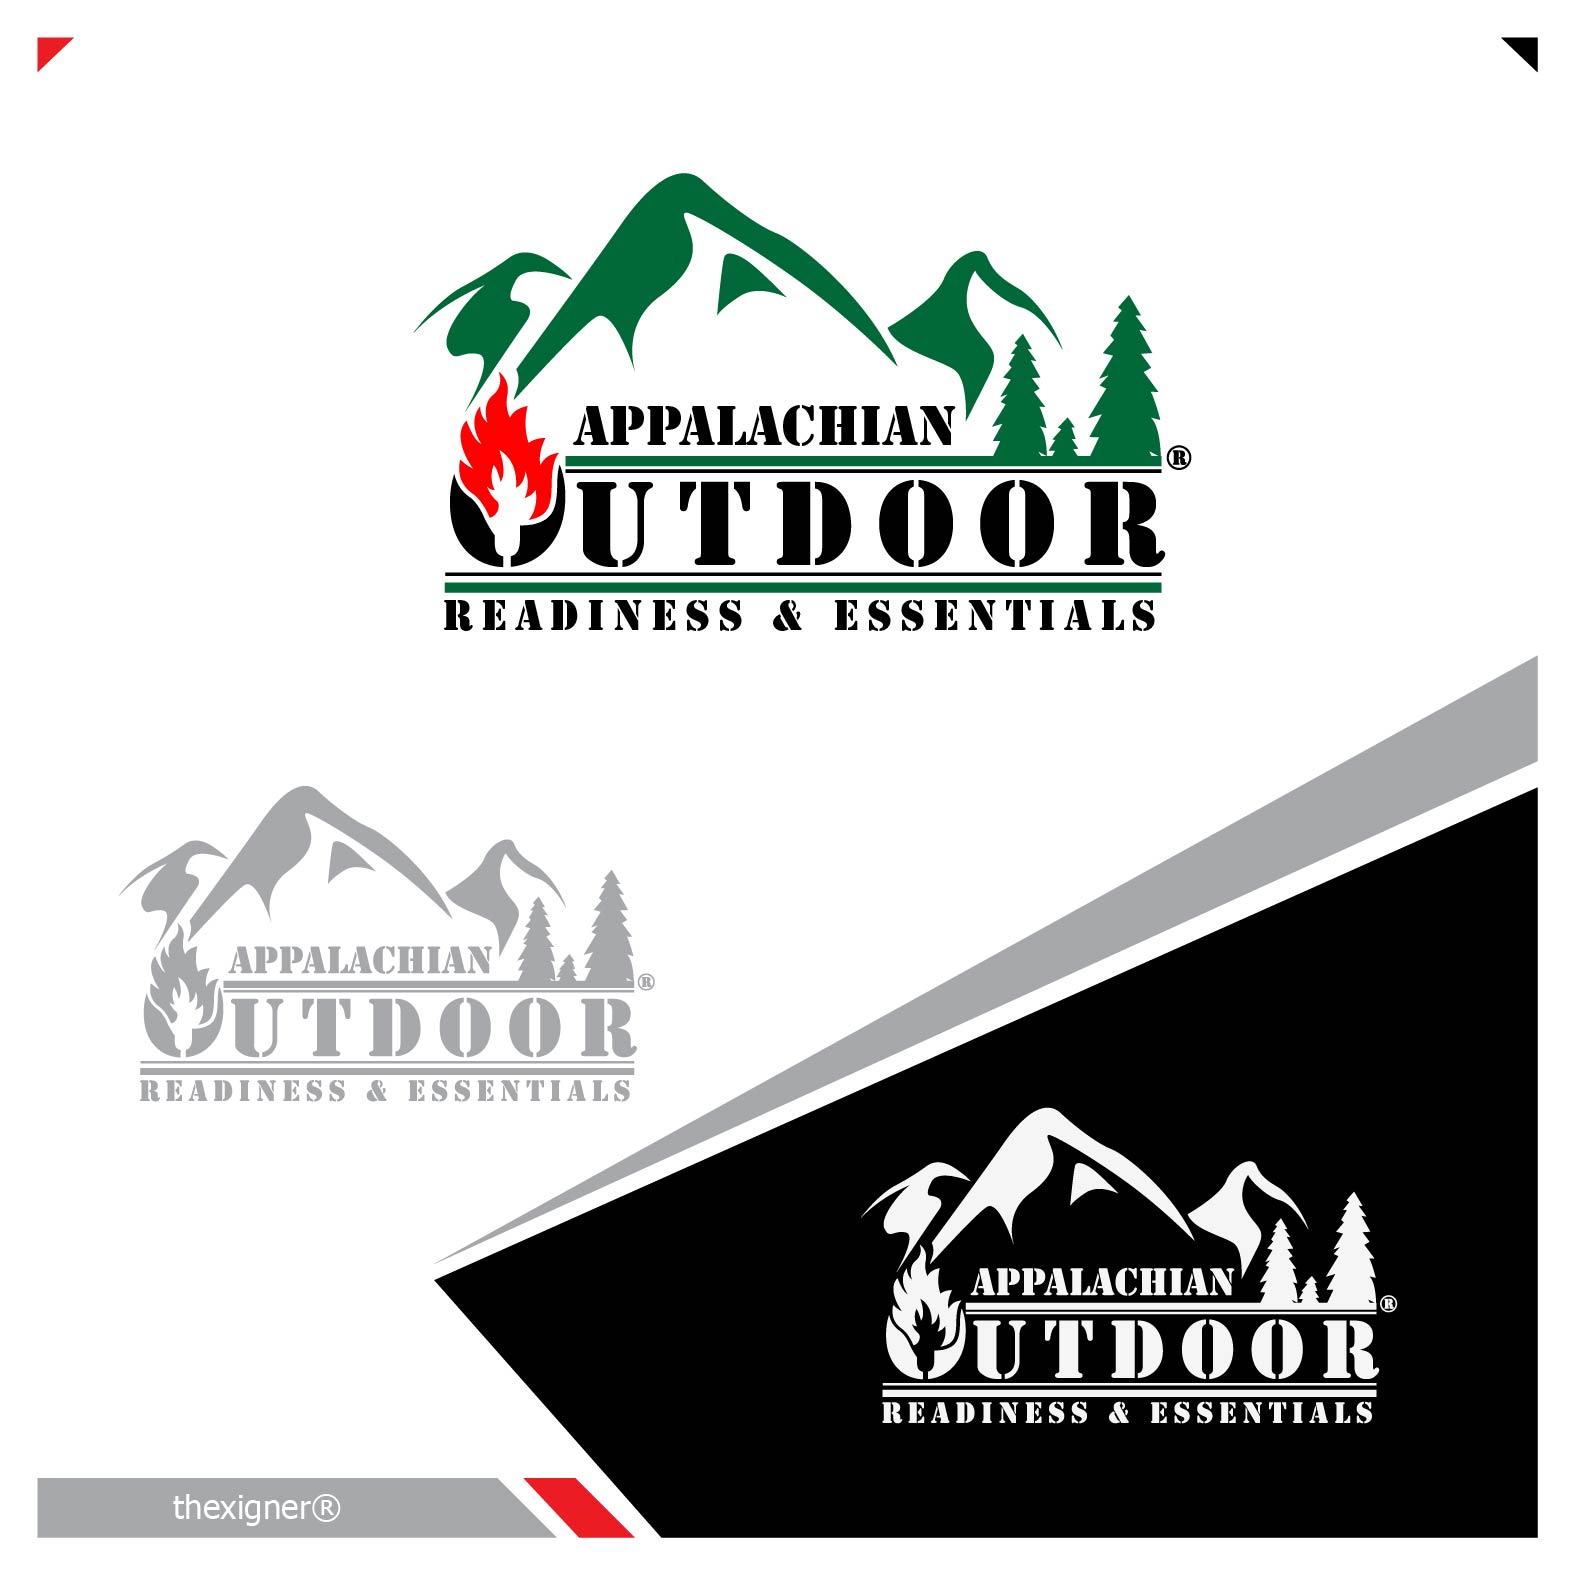 Logo Design by lagalag - Entry No. 29 in the Logo Design Contest Imaginative Logo Design for Appalachian Outdoor Readiness & Essentials.